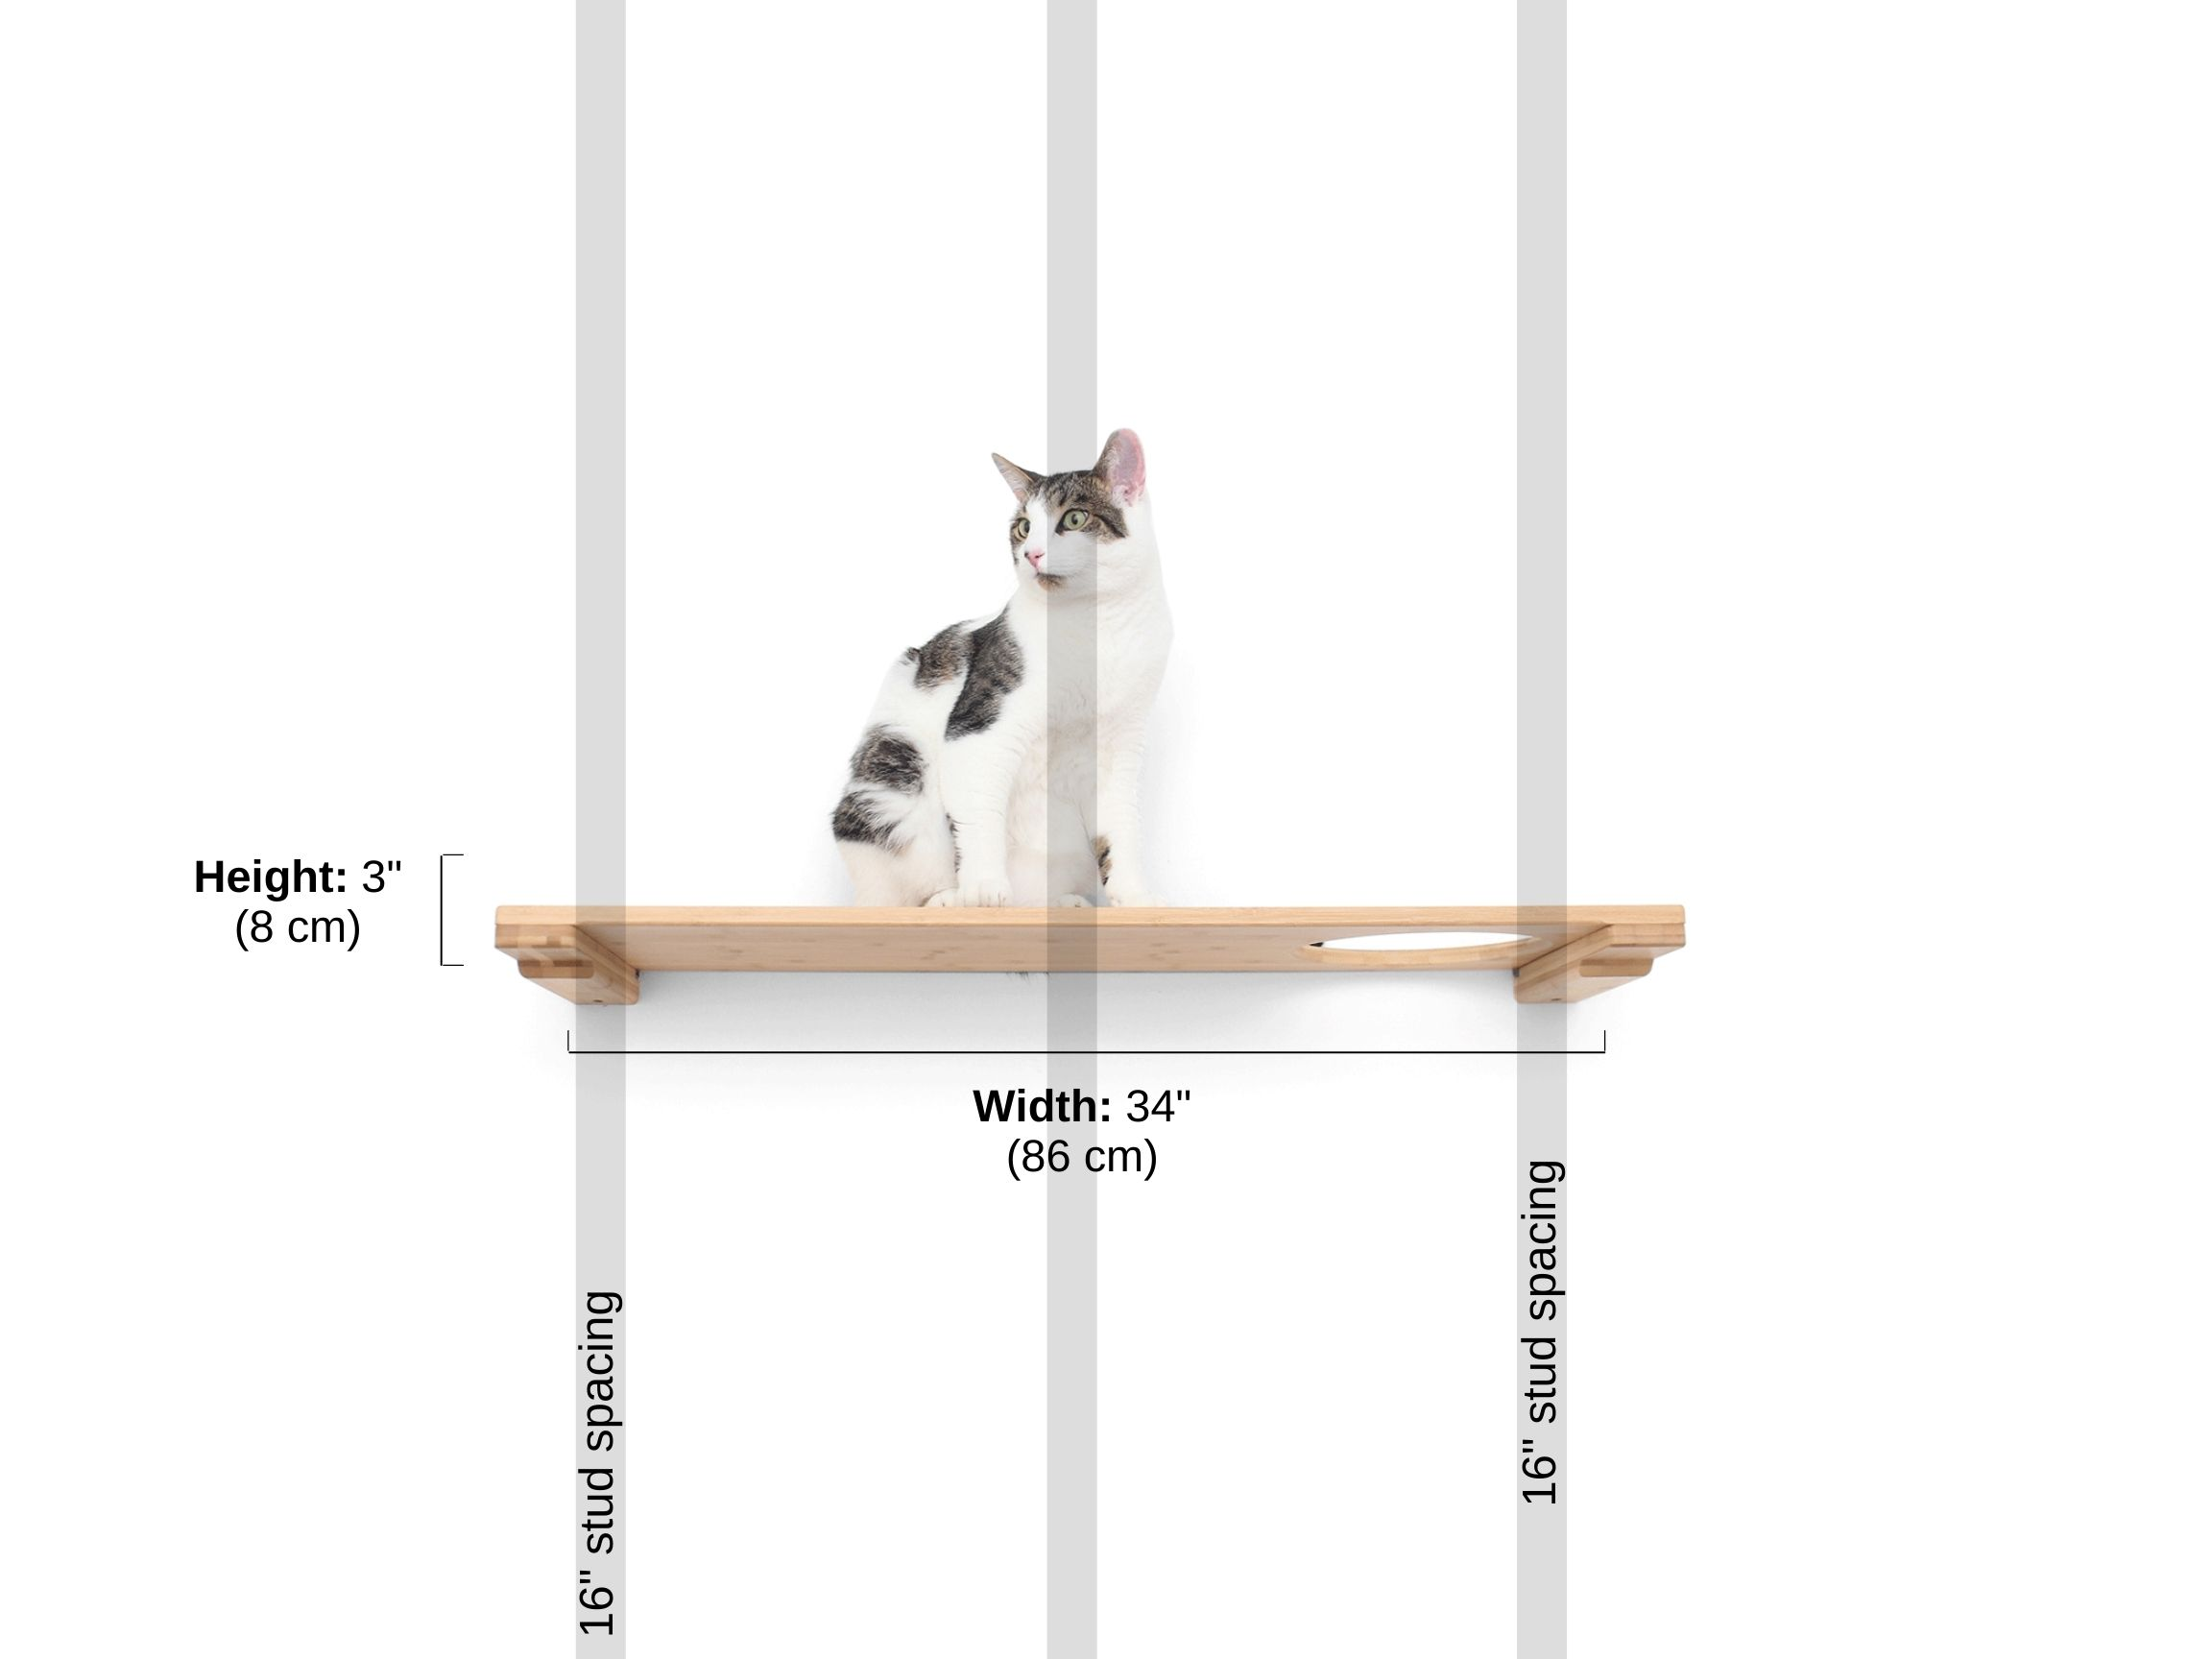 Stud spacing and dimensions of 34 inch shelf